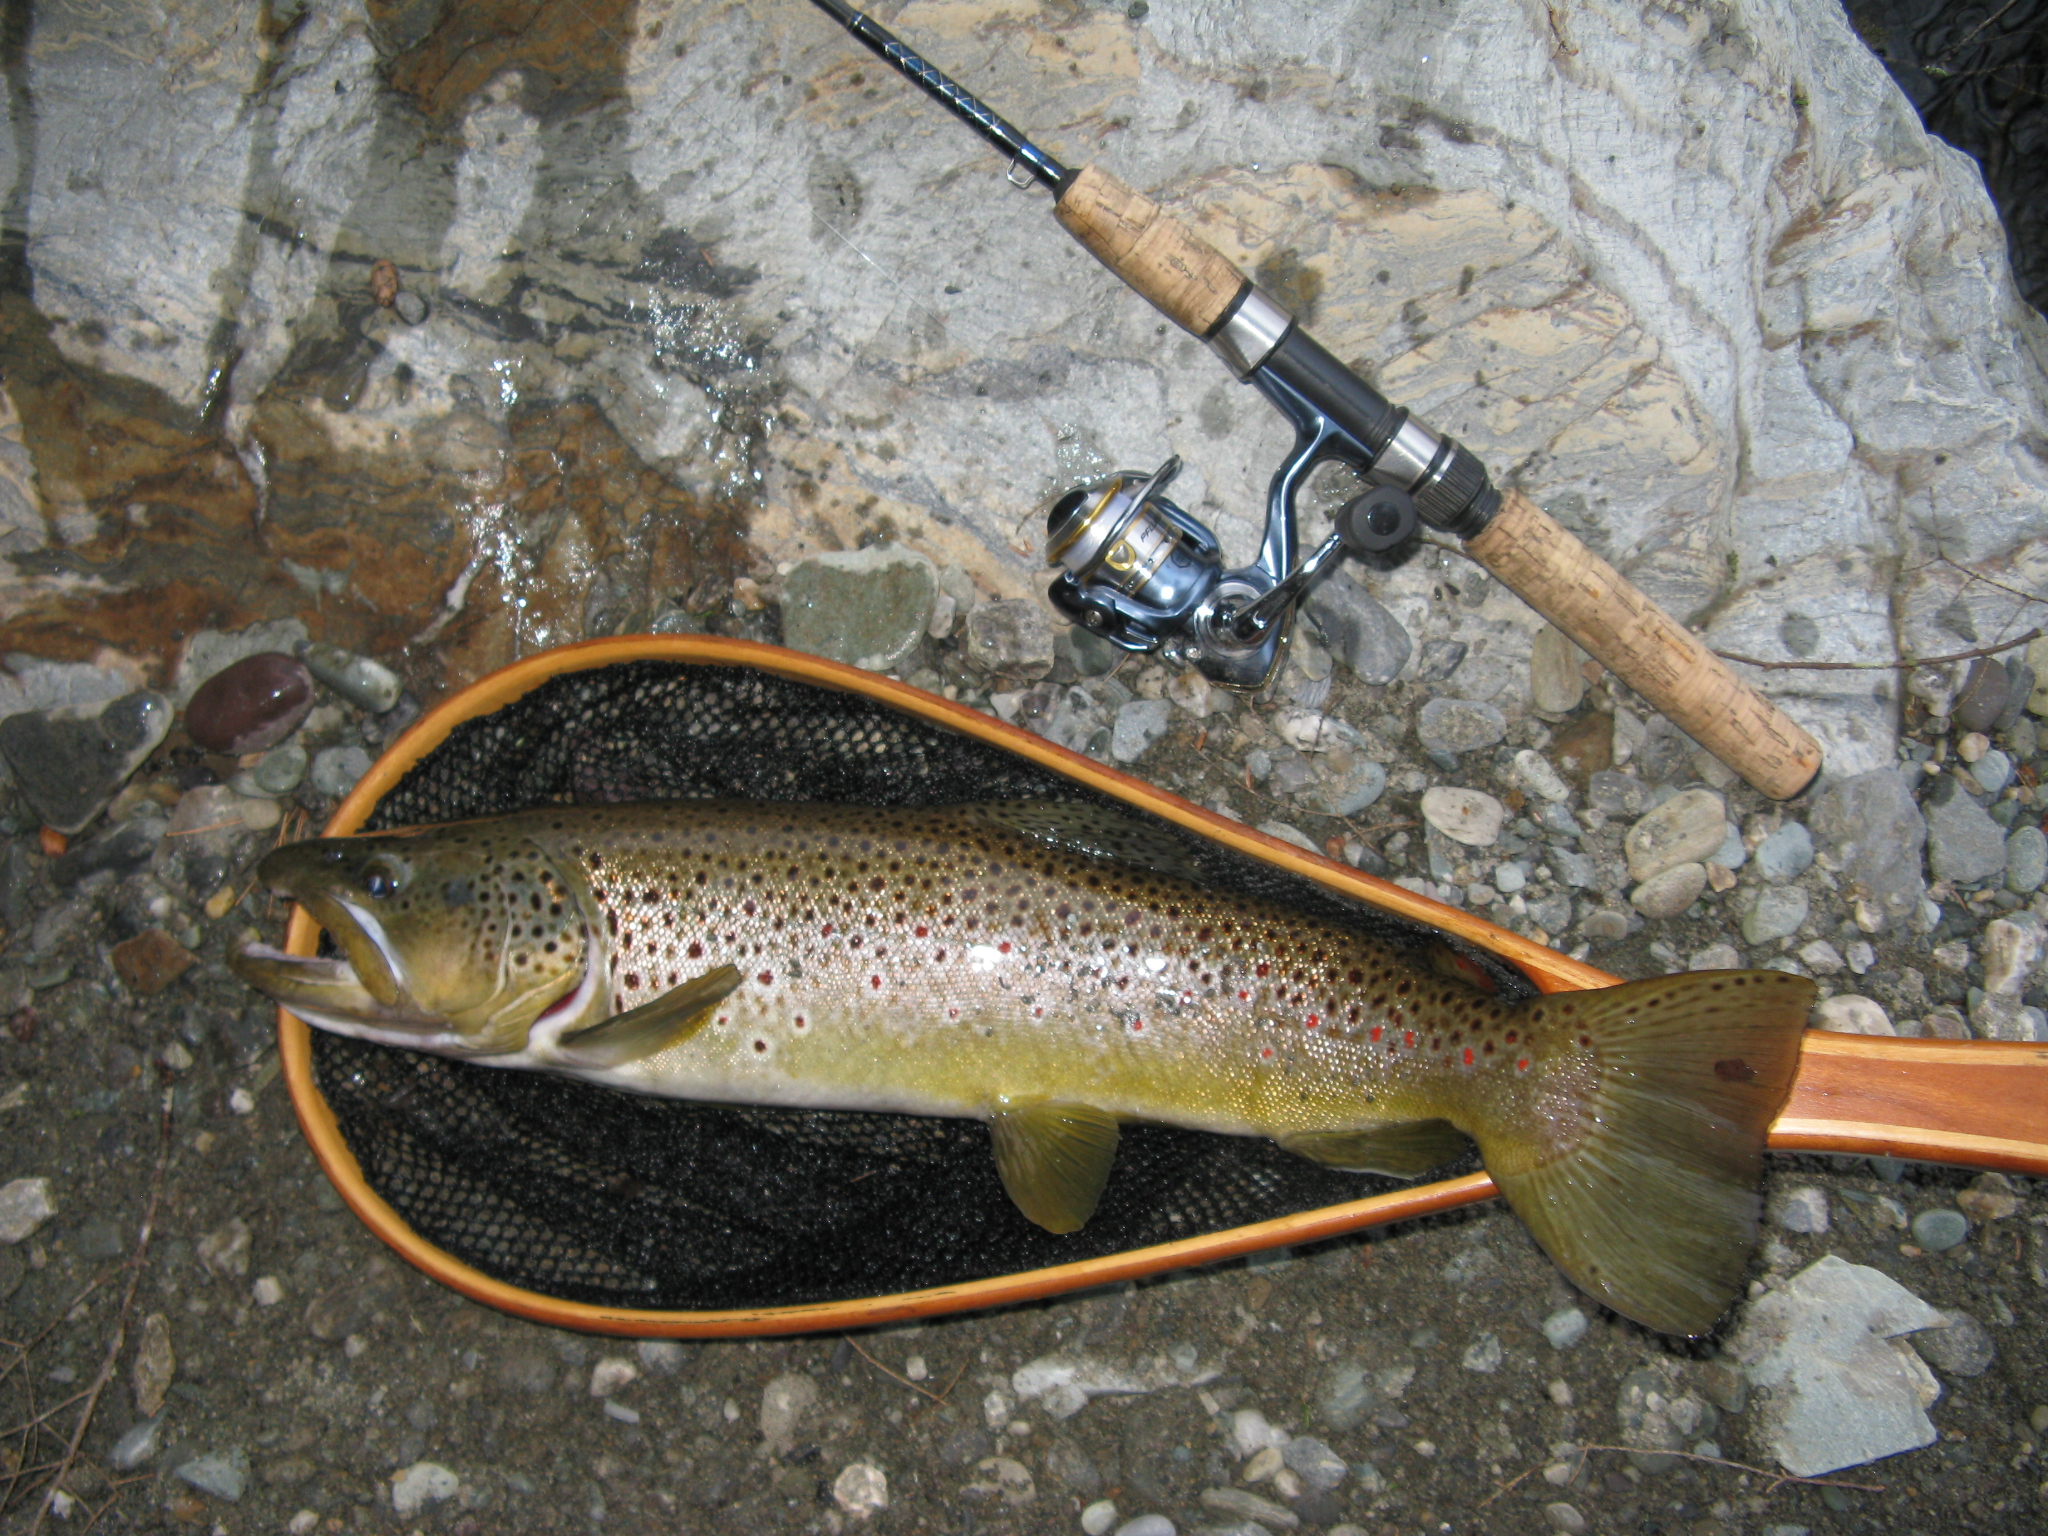 Many vermont streams producing good trout fishing outdoorhub for Vermont trout fishing